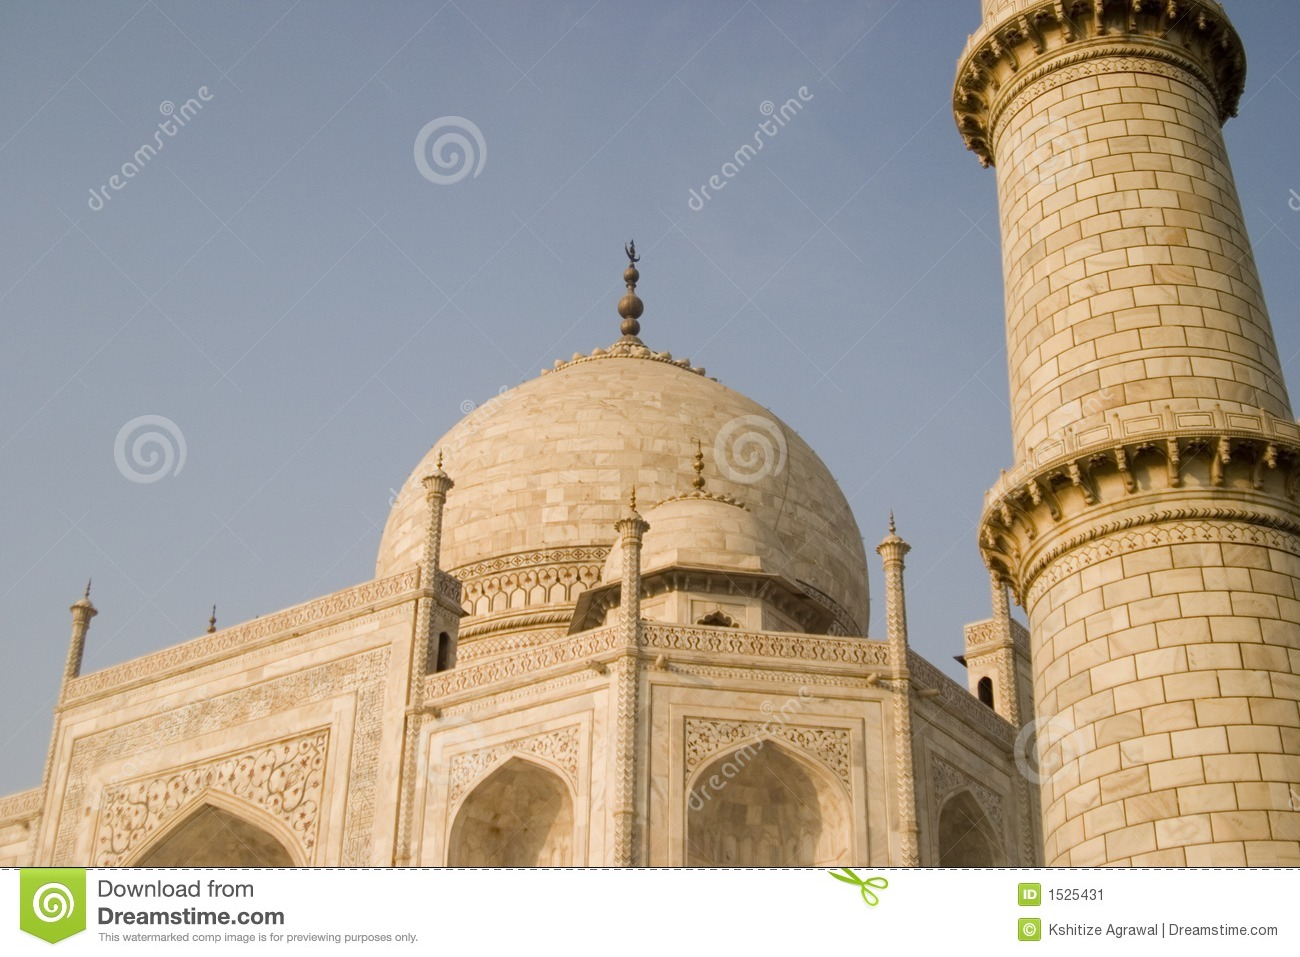 Tower of the taj mahal agra india stock image image for Taj mahal exterior design